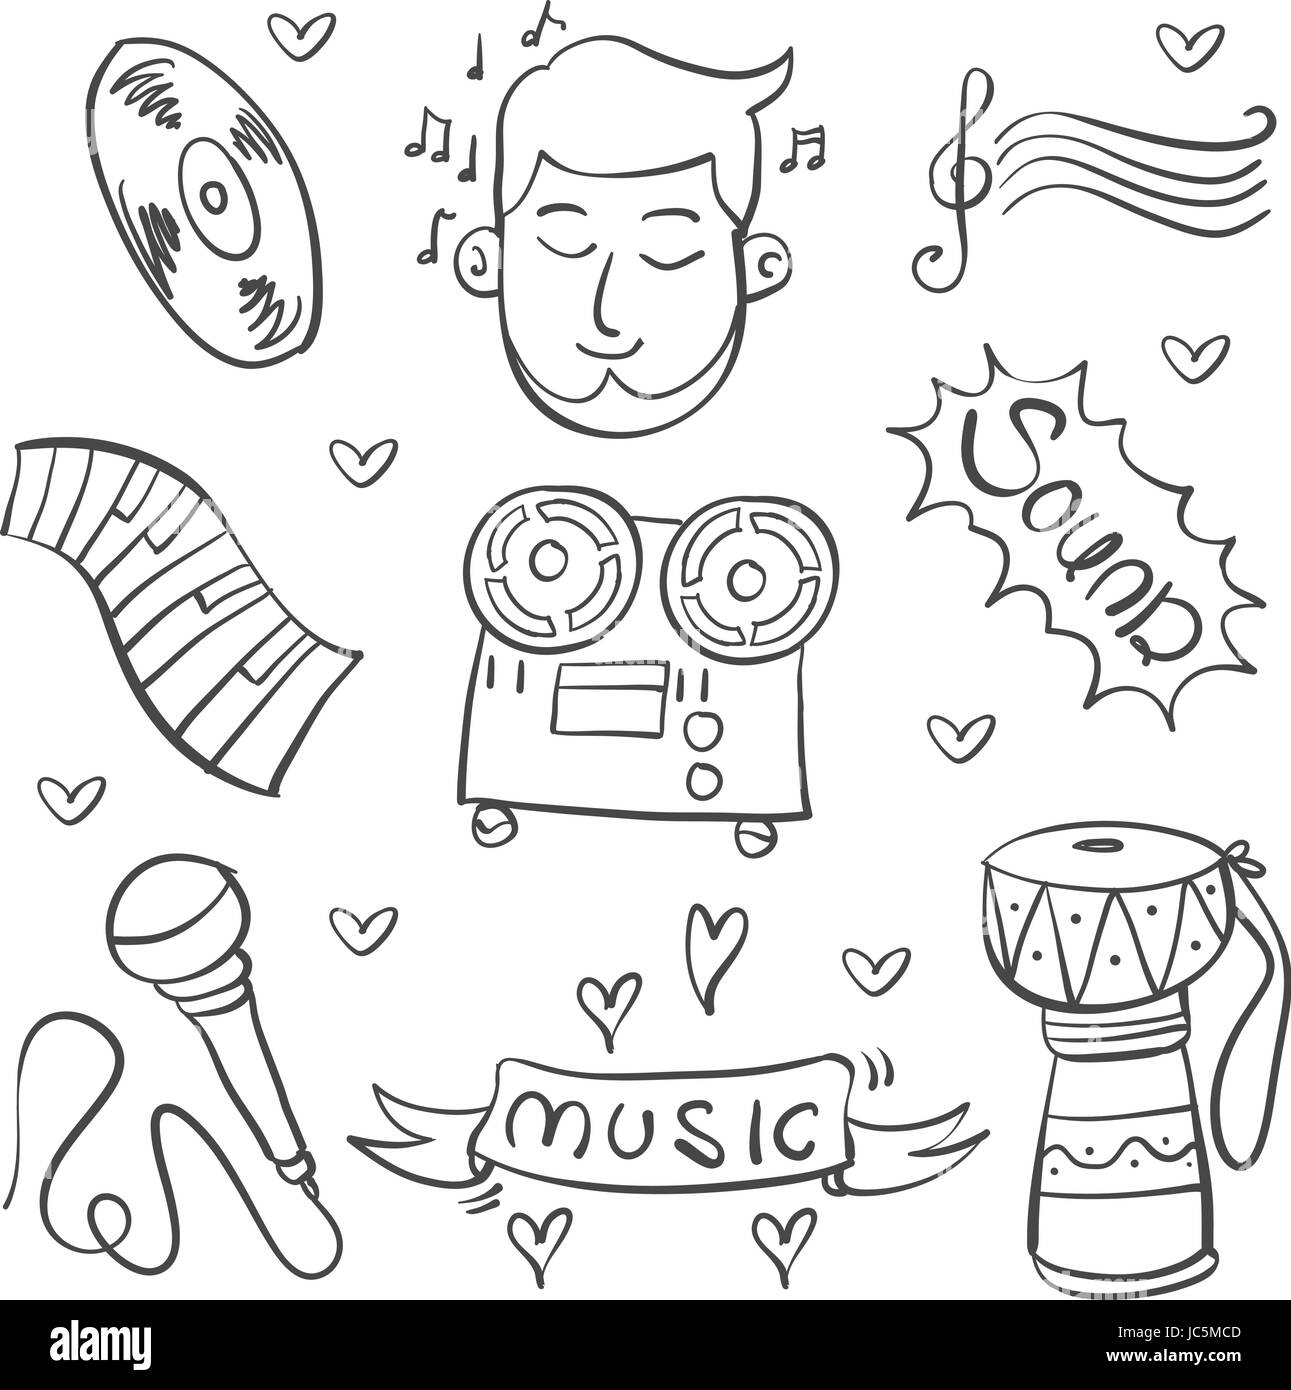 disco cut out stock images pictures page 2 alamy Online Party Invitations doodle of music various vector illustration stock image